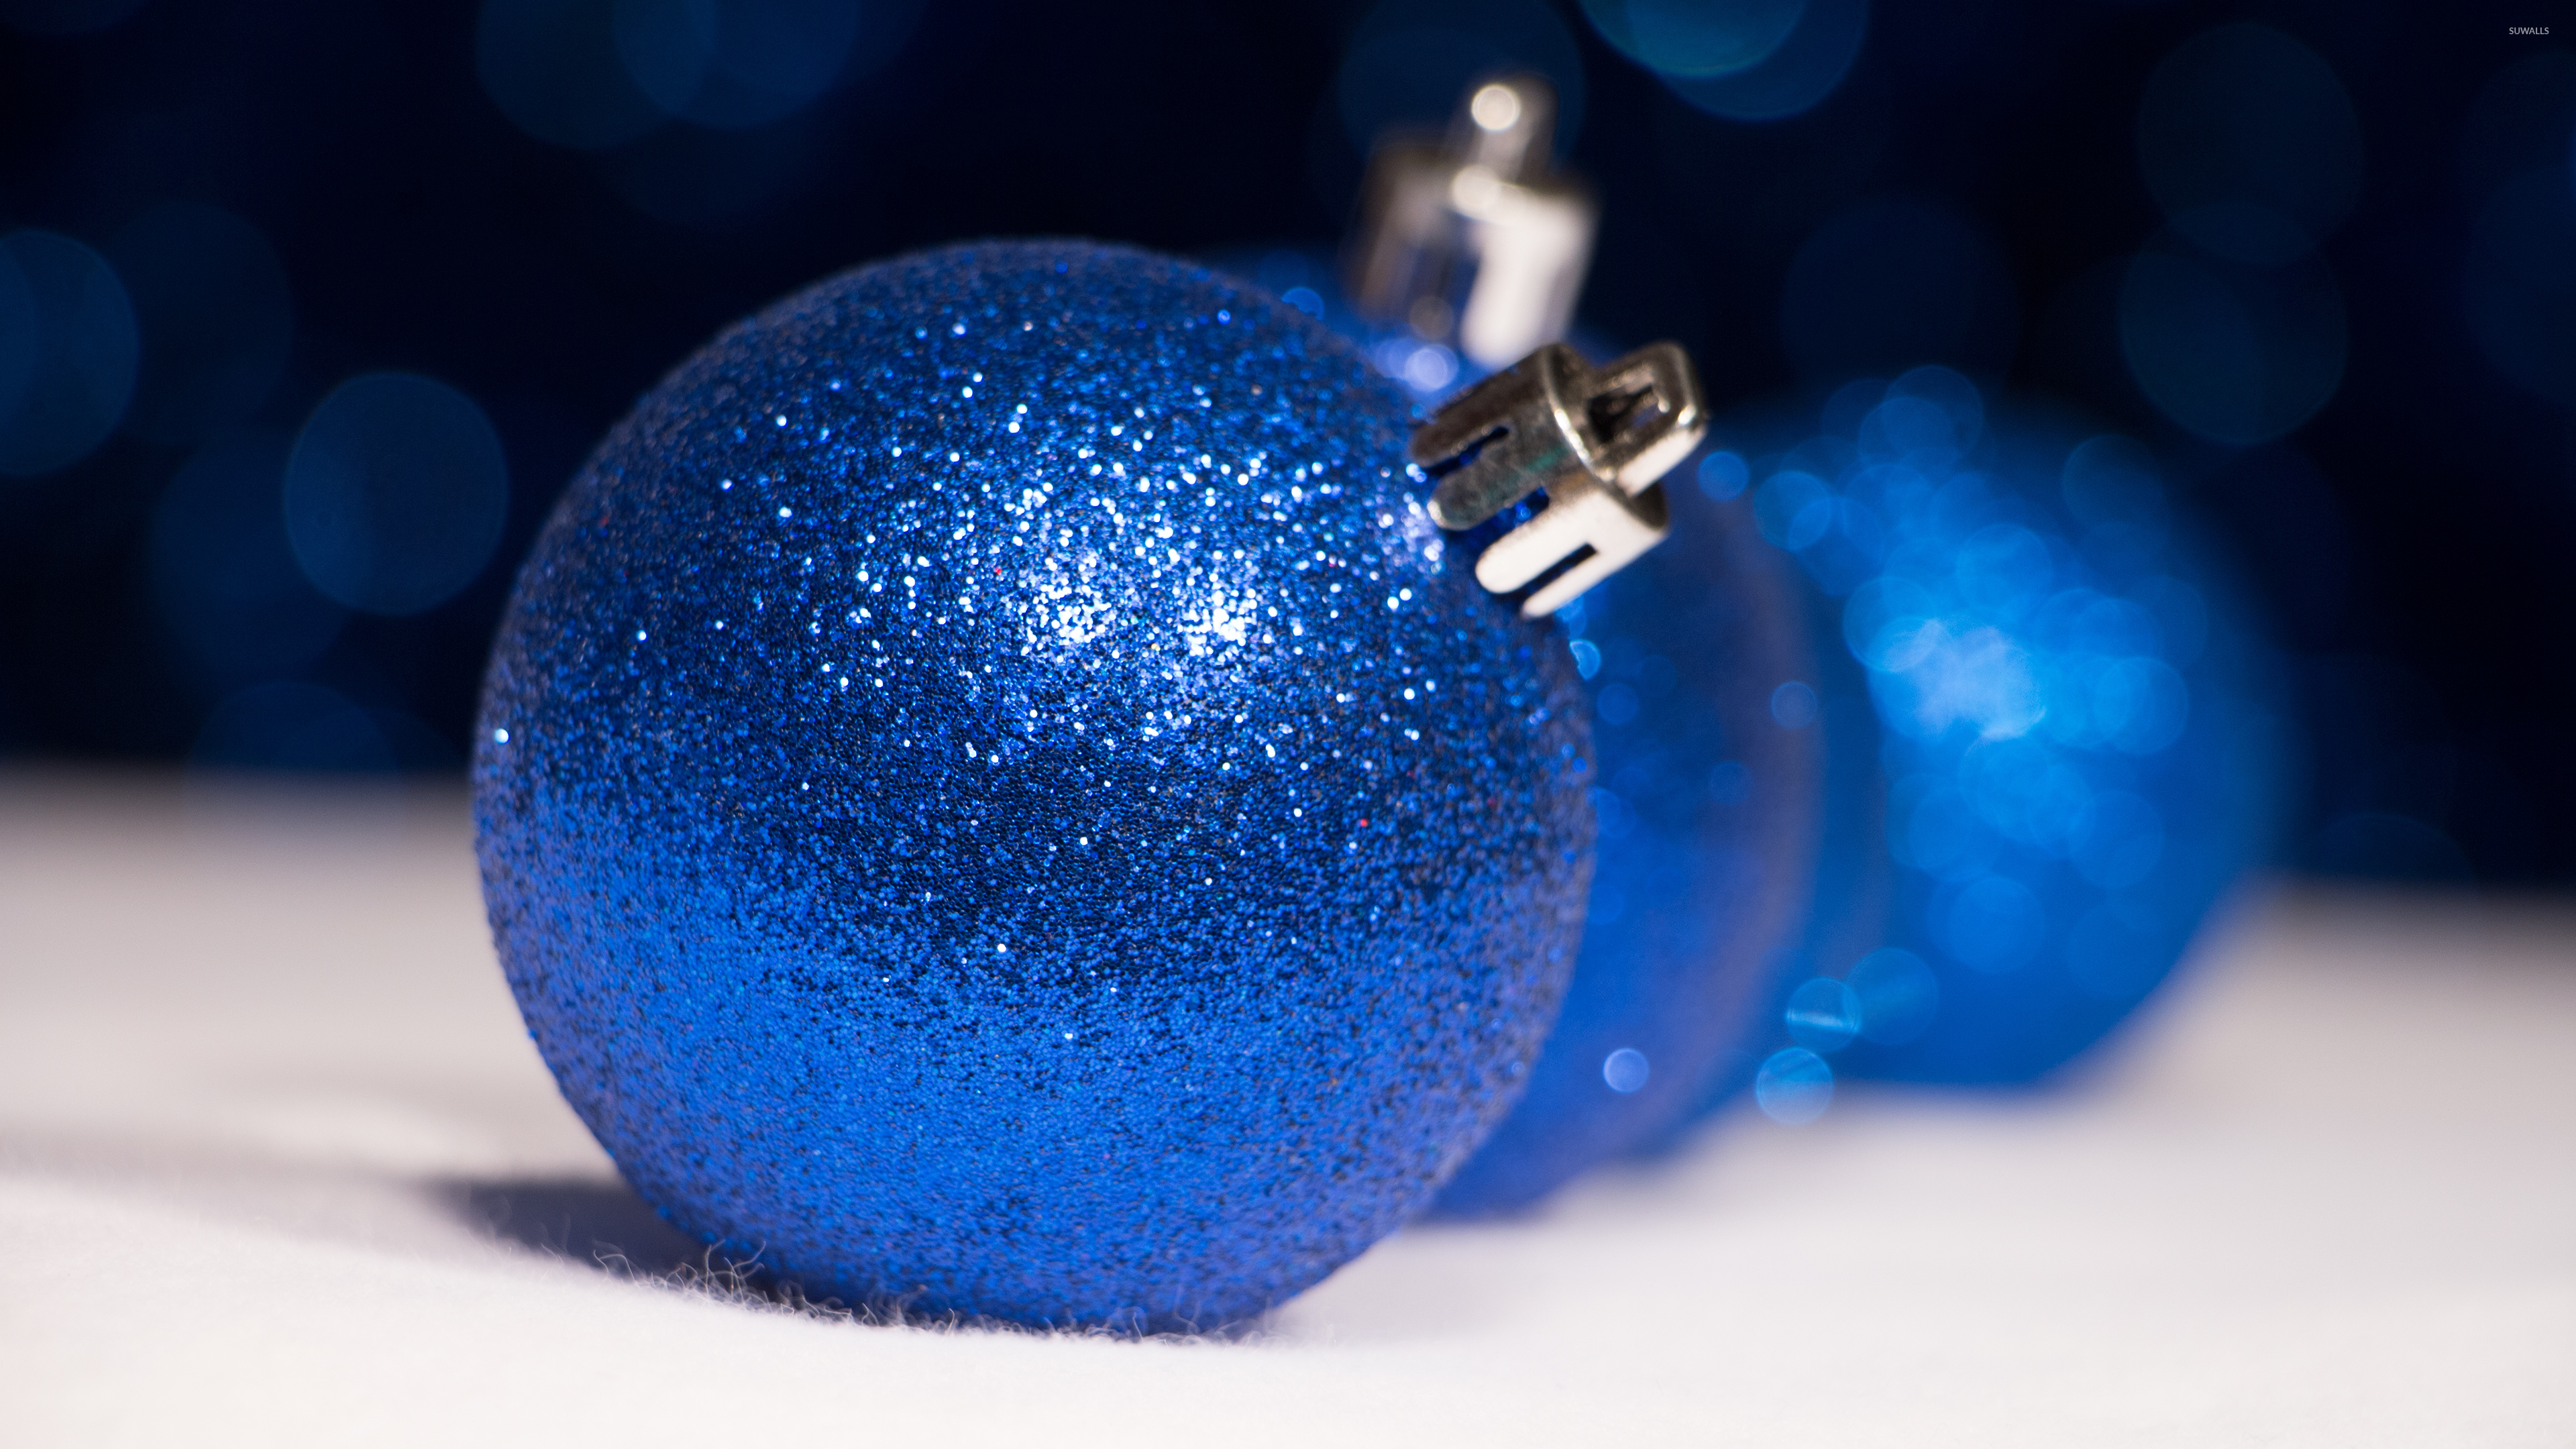 Sparkly Blue Christmas Ornaments Wallpaper Holiday Wallpapers 51539